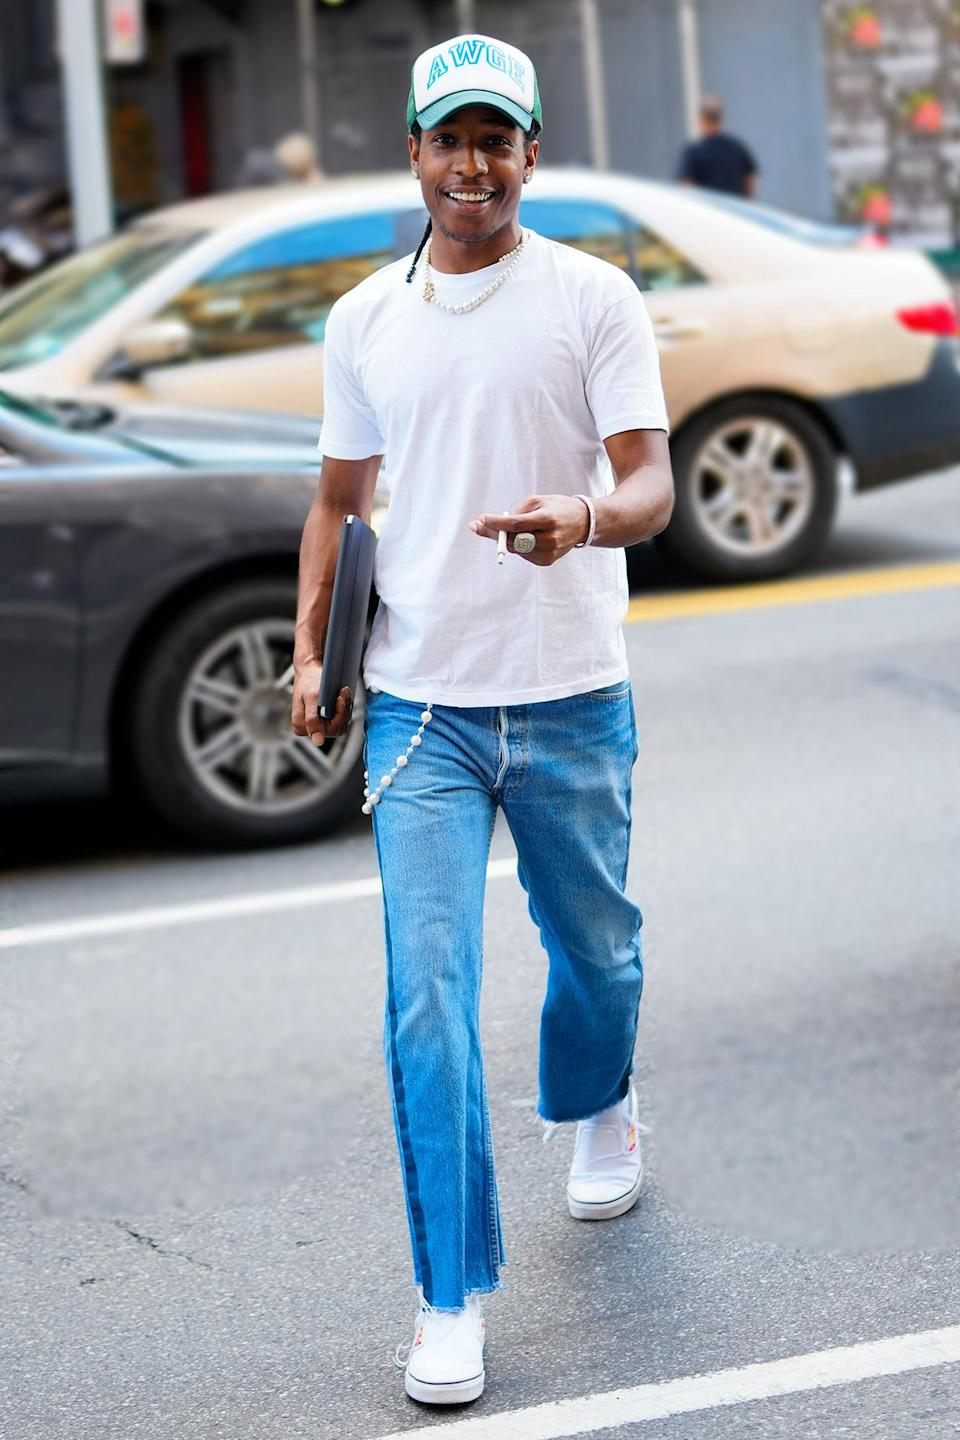 <p>A$AP Rocky rocks a white tee, jeans and sneakers while out in N.Y.C. on June 30.</p>